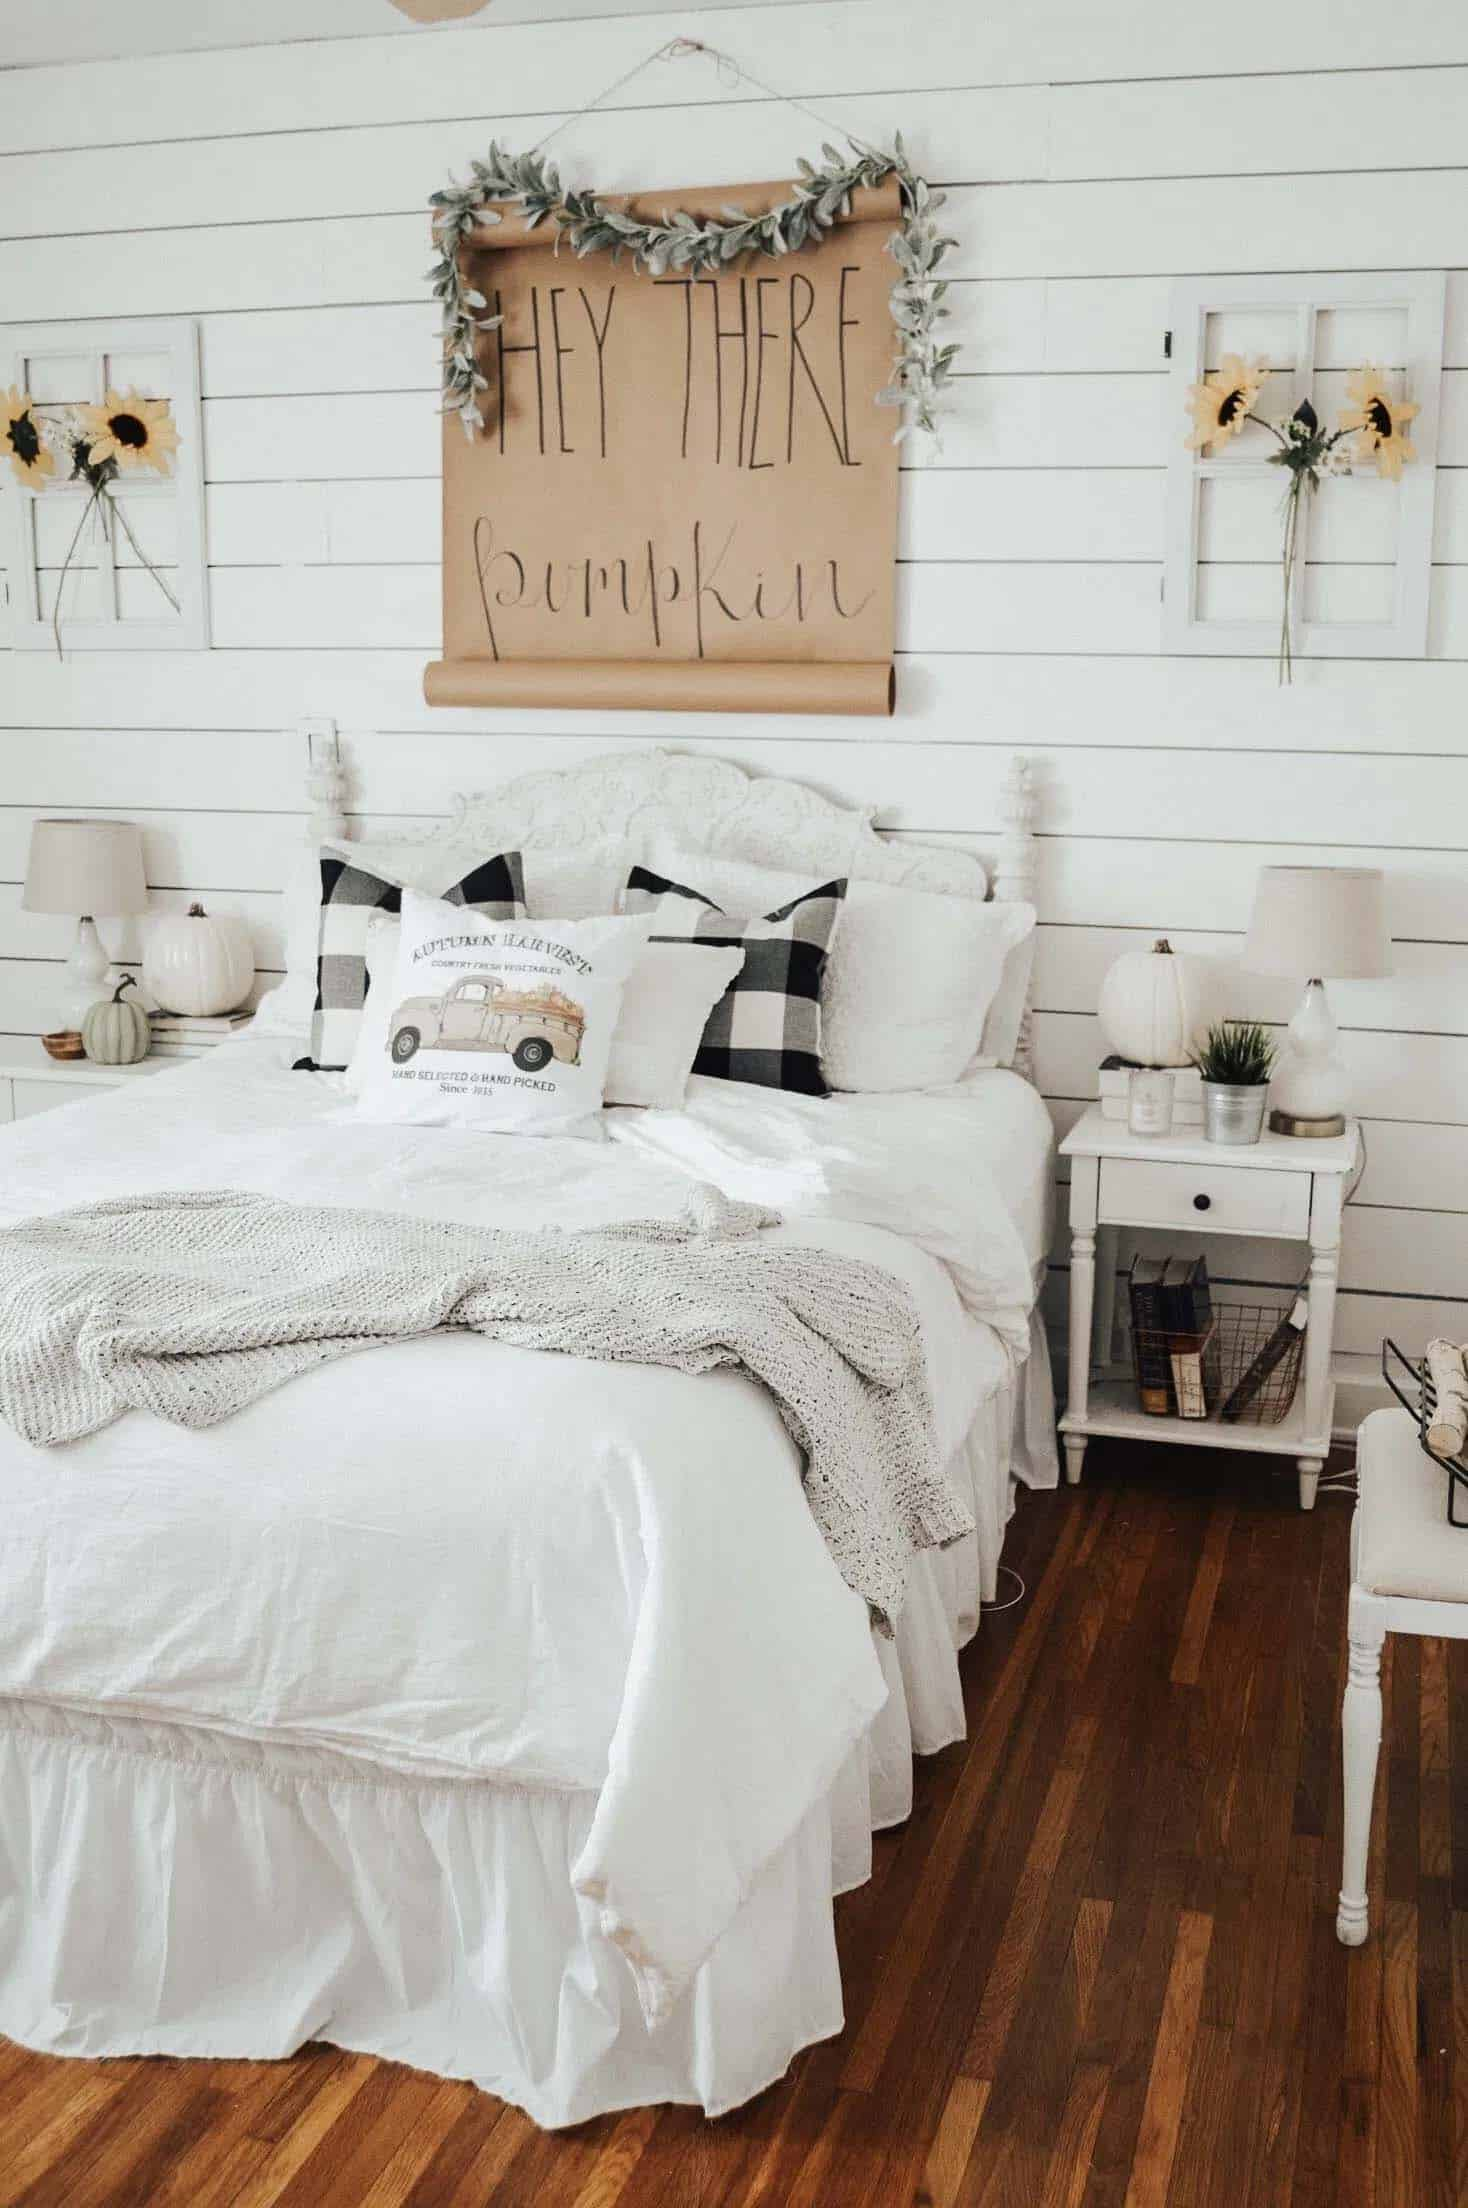 Bedroom-Decorating-Ideas-For-Autumn-07-1-Kindesign